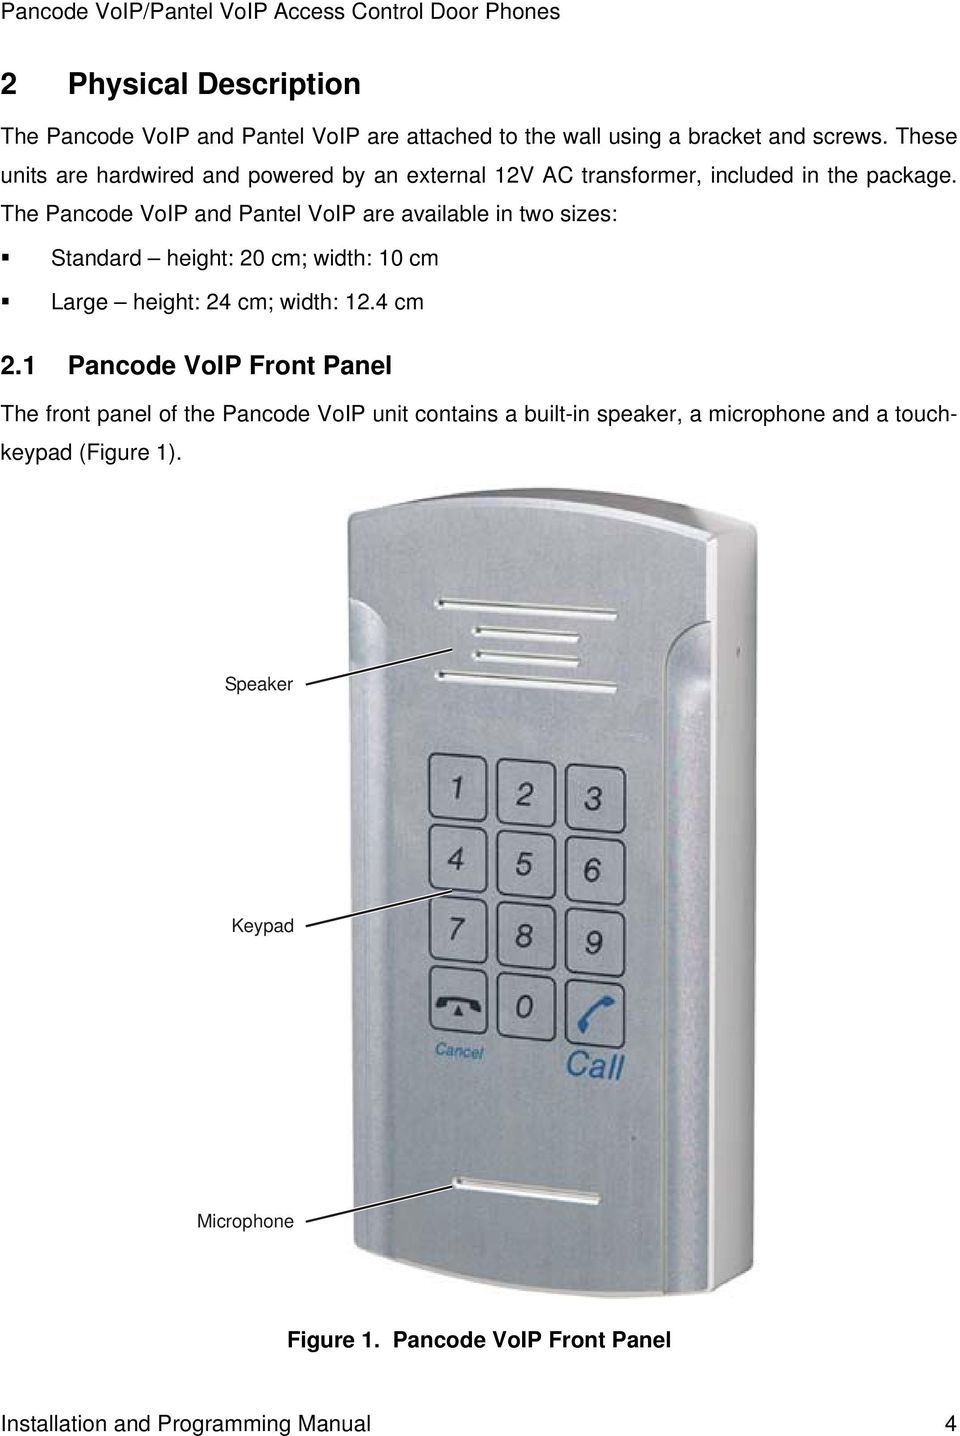 The Pancode VoIP and Pantel VoIP are available in two sizes: Standard height: 20 cm; width: 10 cm Large height: 24 cm; width: 12.4 cm 2.